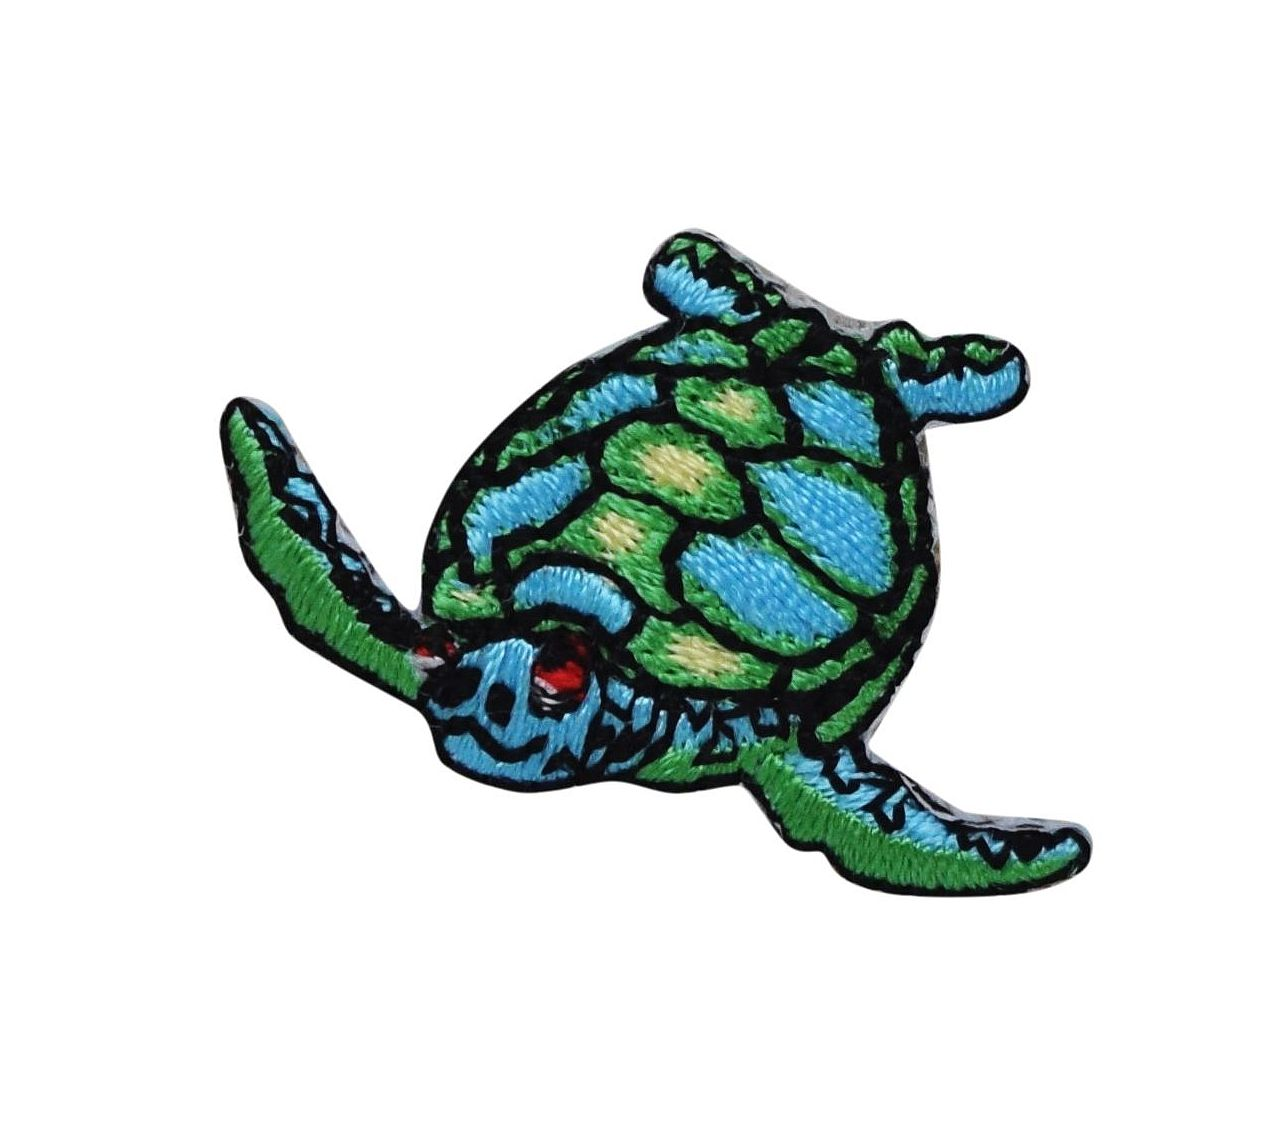 Turtle Reptile Painted Embroidered Iron On Patch Nature